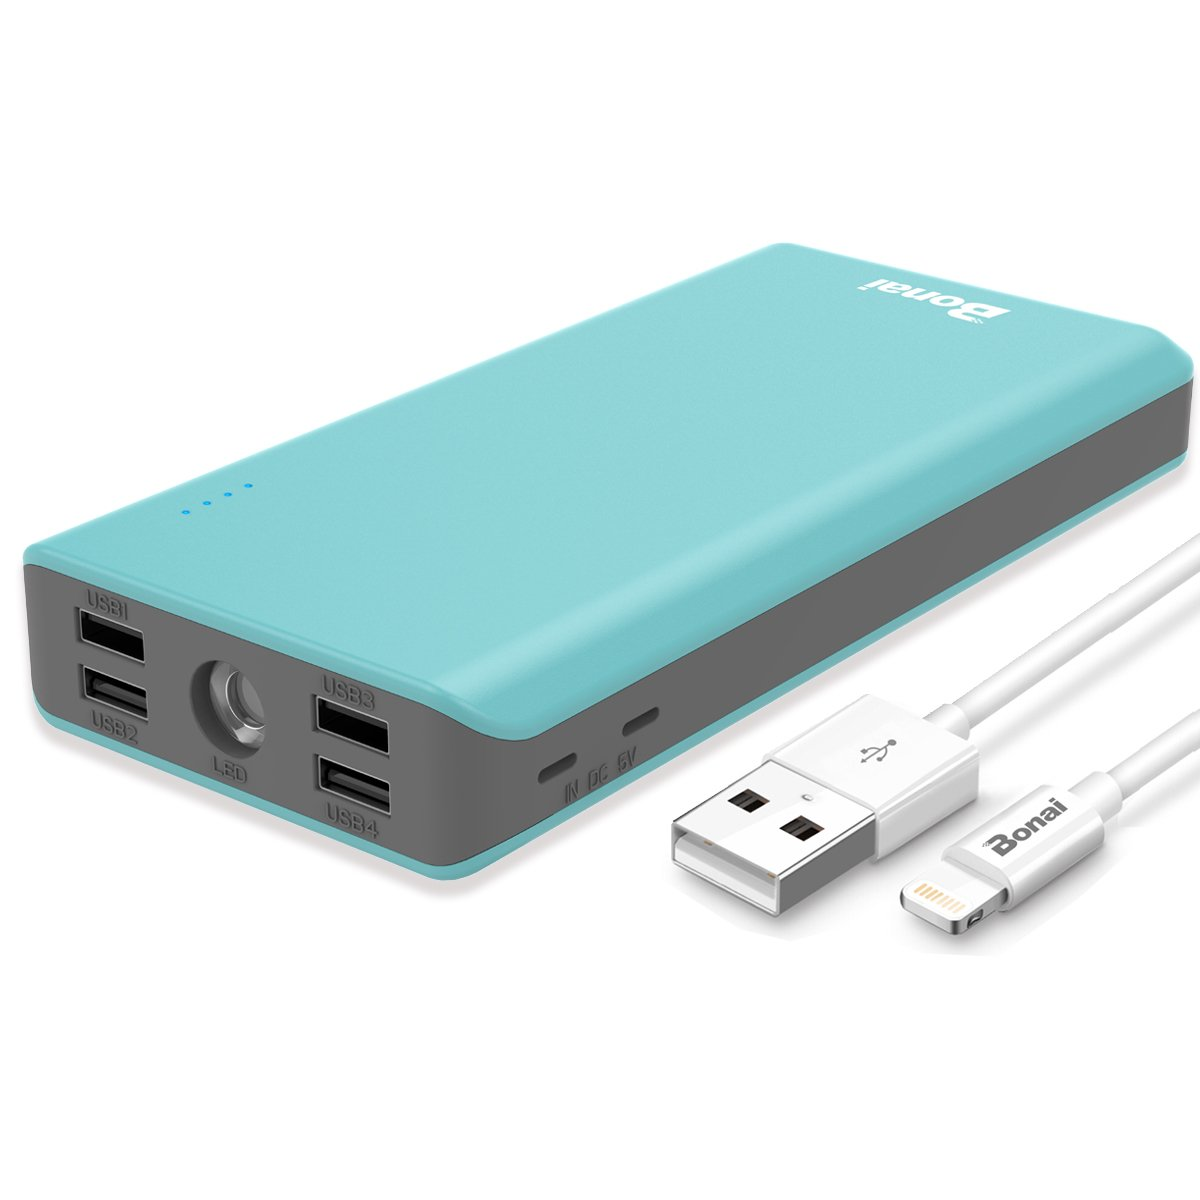 Power Bank, BONAI 32800mAh Polymer Portable Charger, Fast Recharge External Battery Pack, 4.0A Two iPhone Port Input 5.6A 4-Port Output with Flashlight for iPhone iPad Samsung Android- Mint